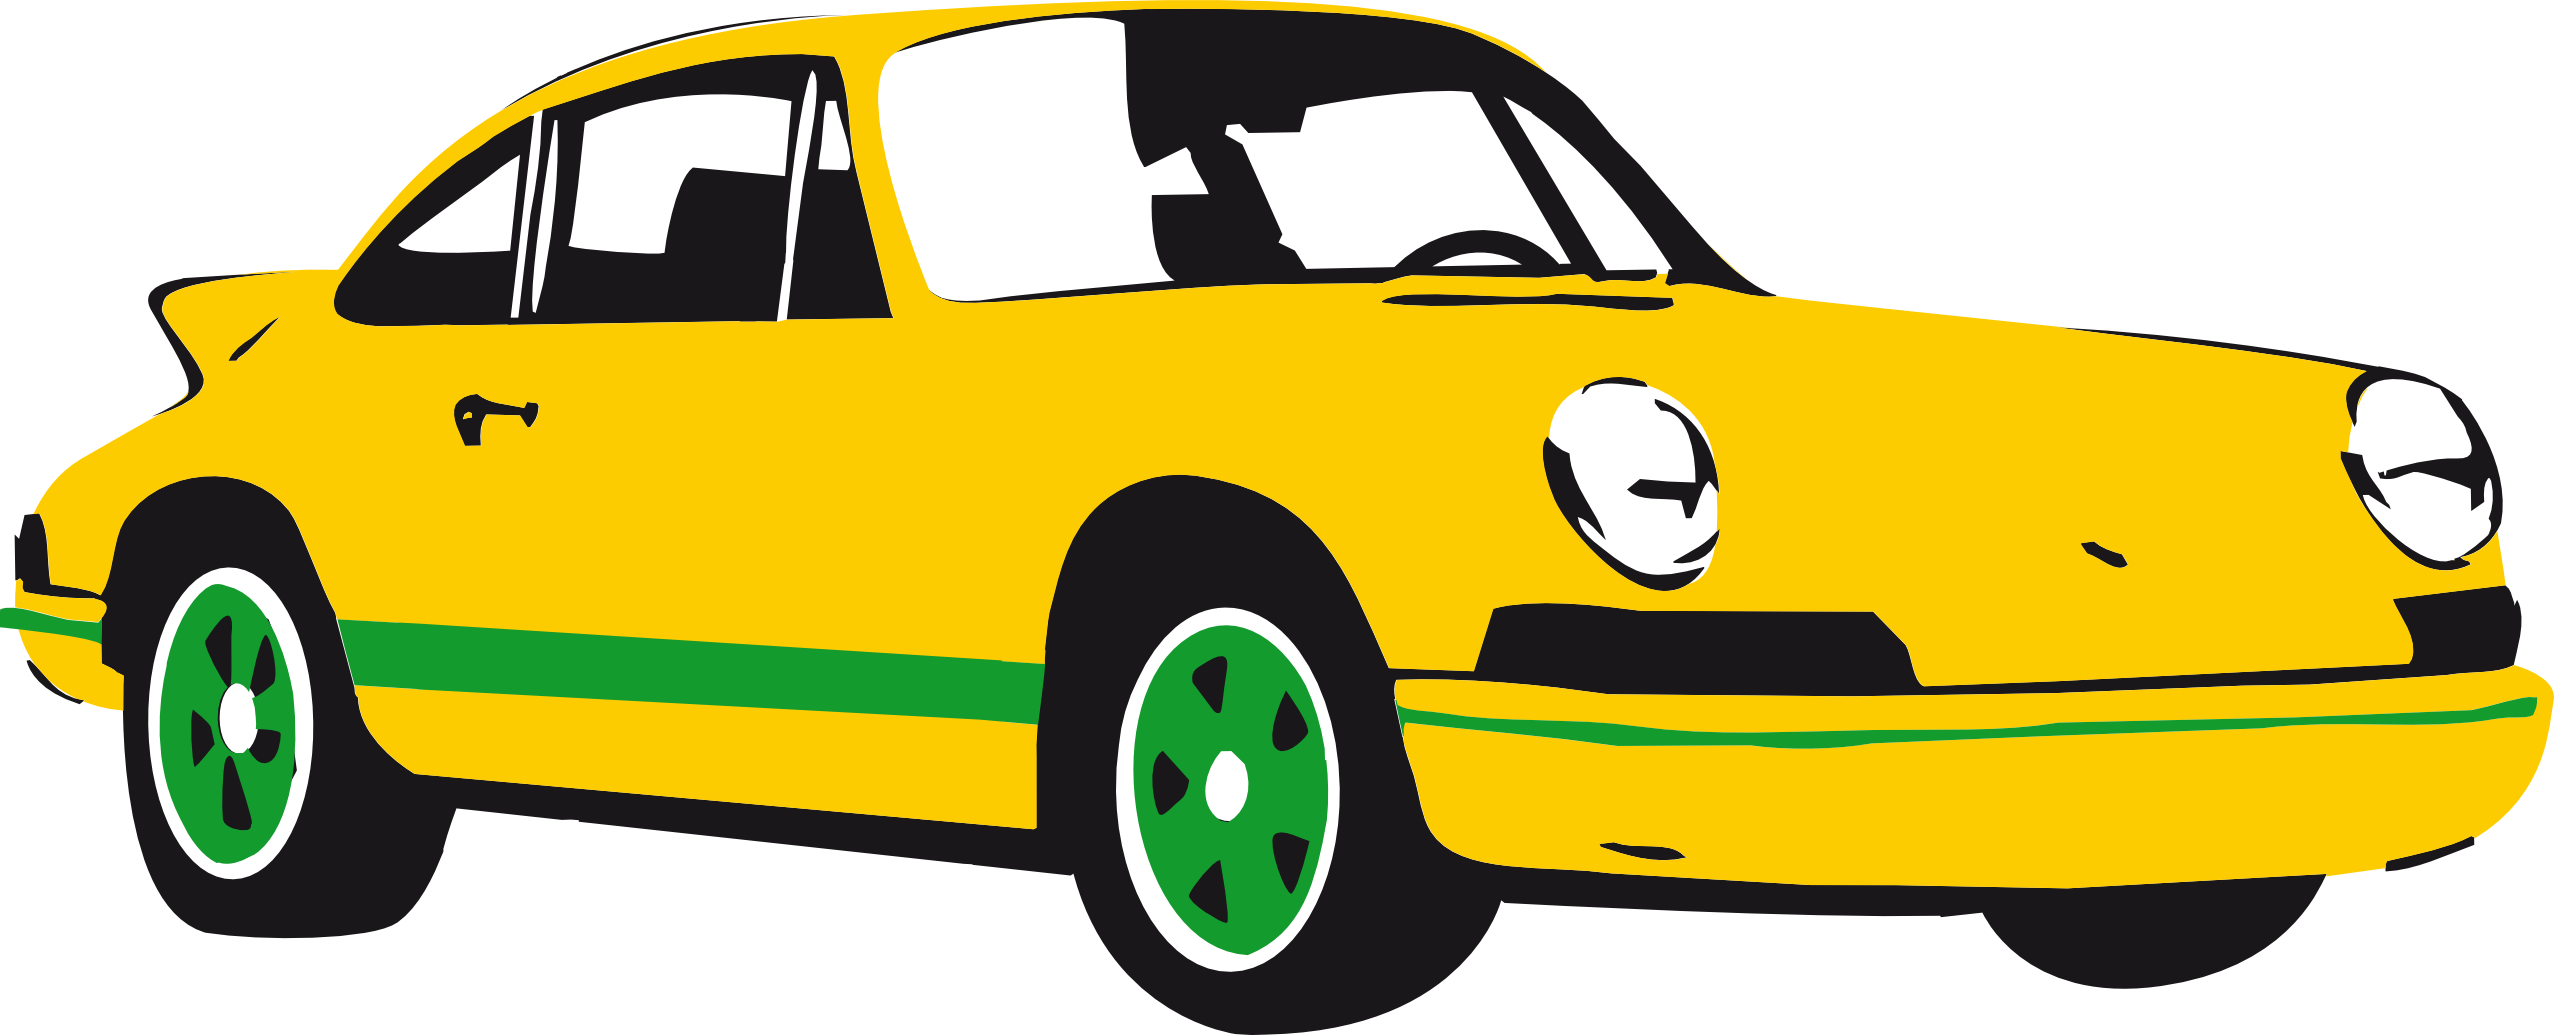 Cartoon car png. Free clipart of cars